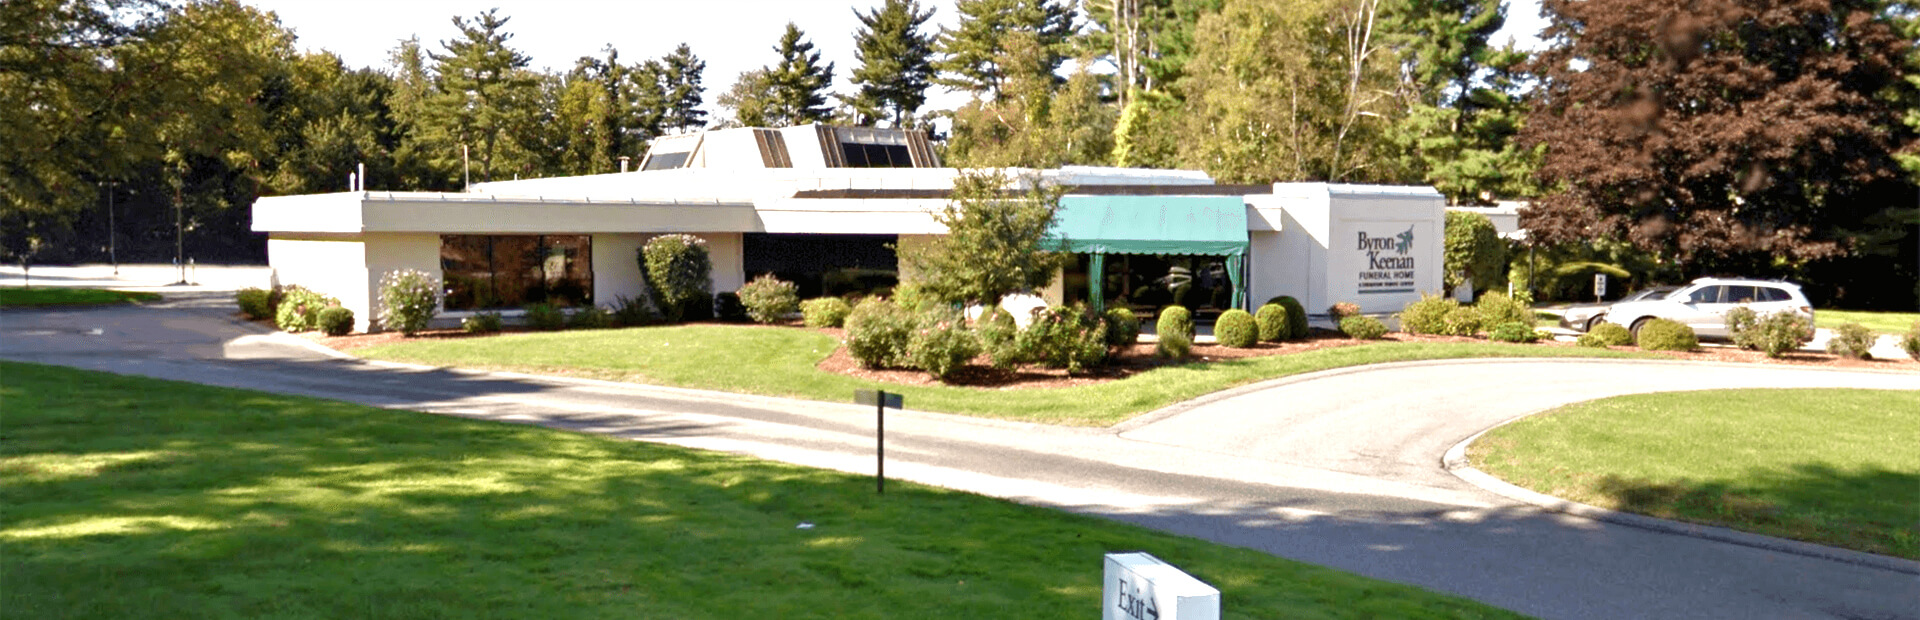 Byron Keenan Funeral Home & Cremation Tribute Center in Springfield, MA